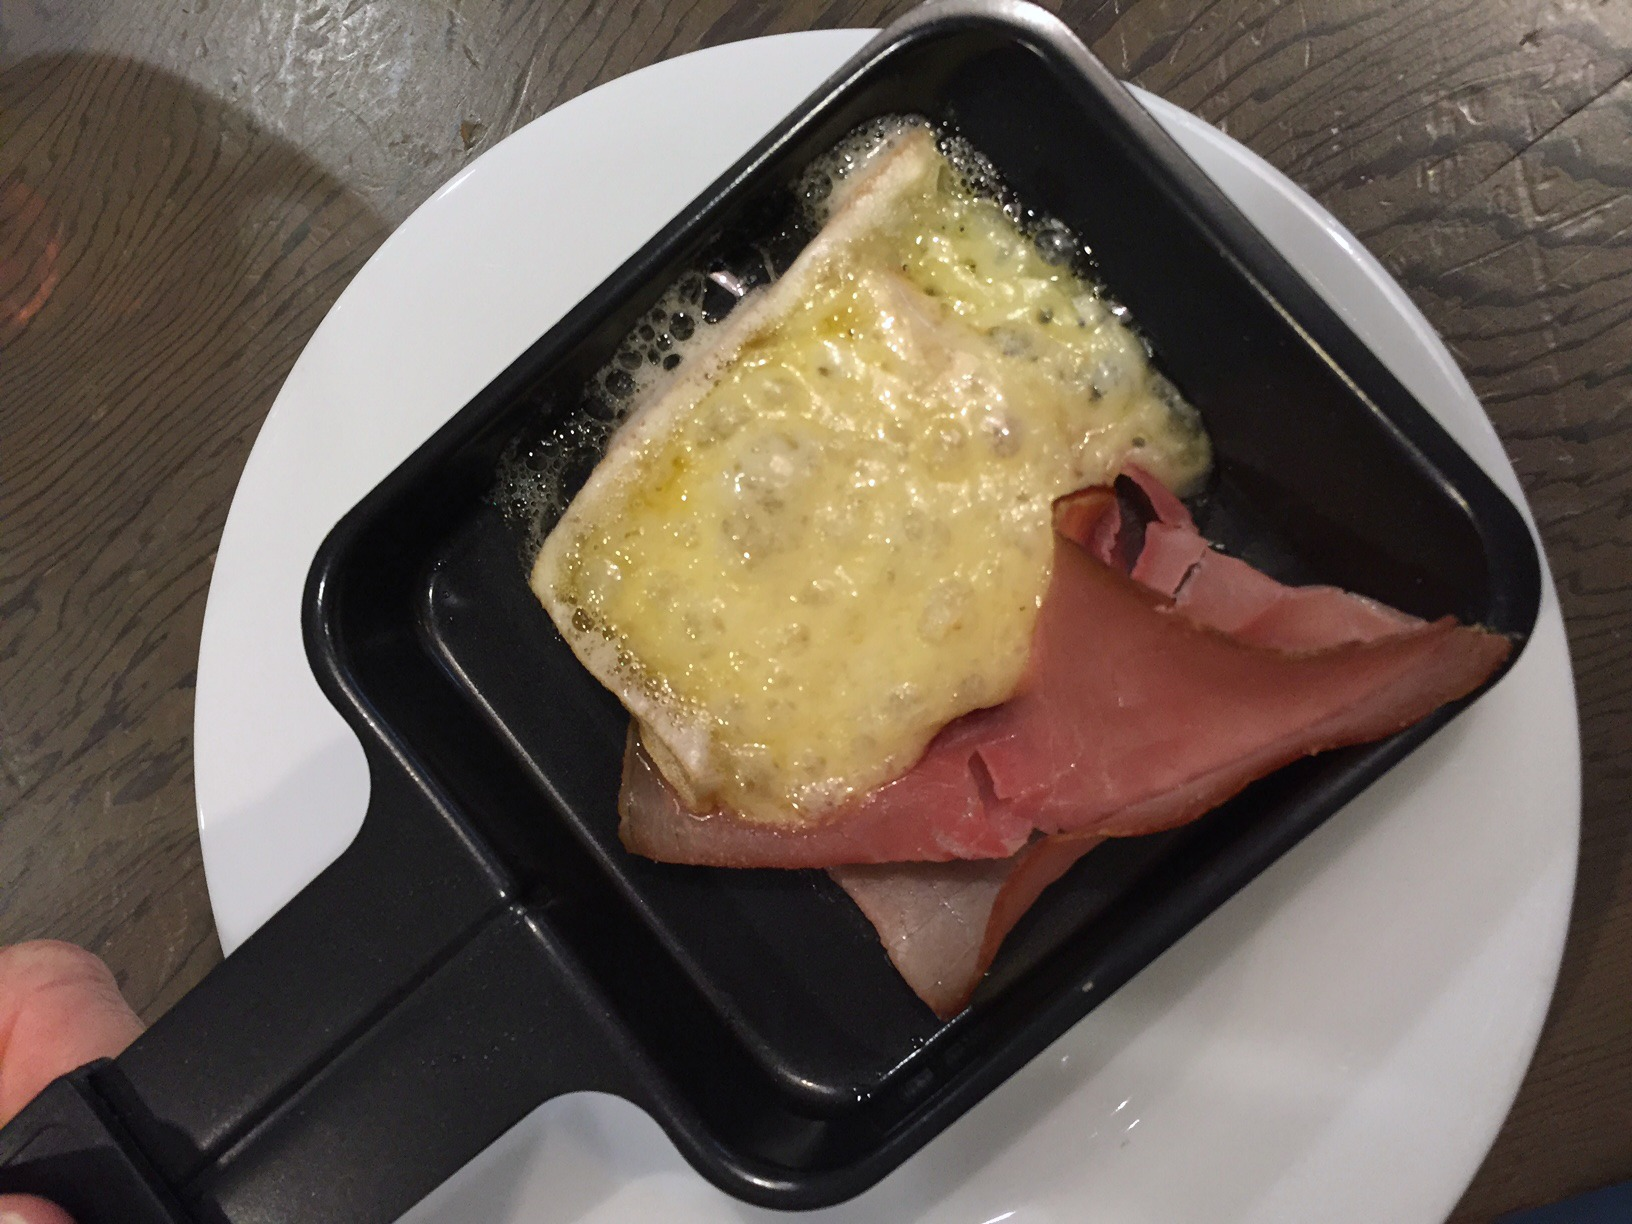 raclette melted